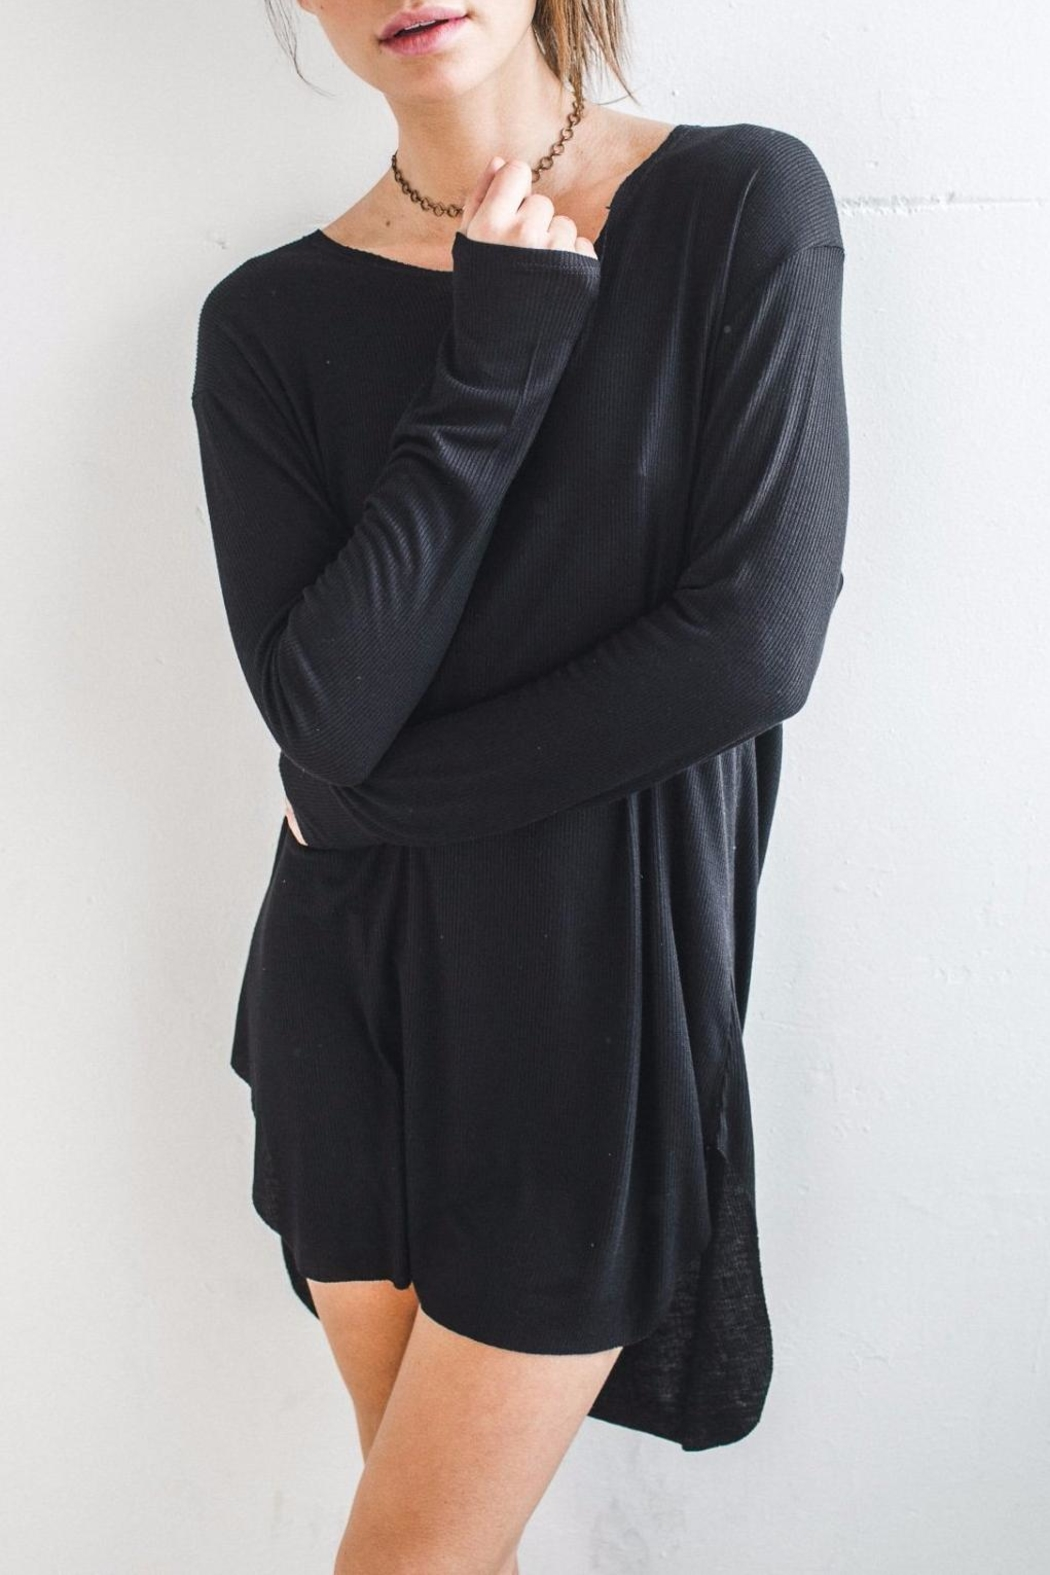 Joah Brown Knightingale Tunic Dress - Side Cropped Image